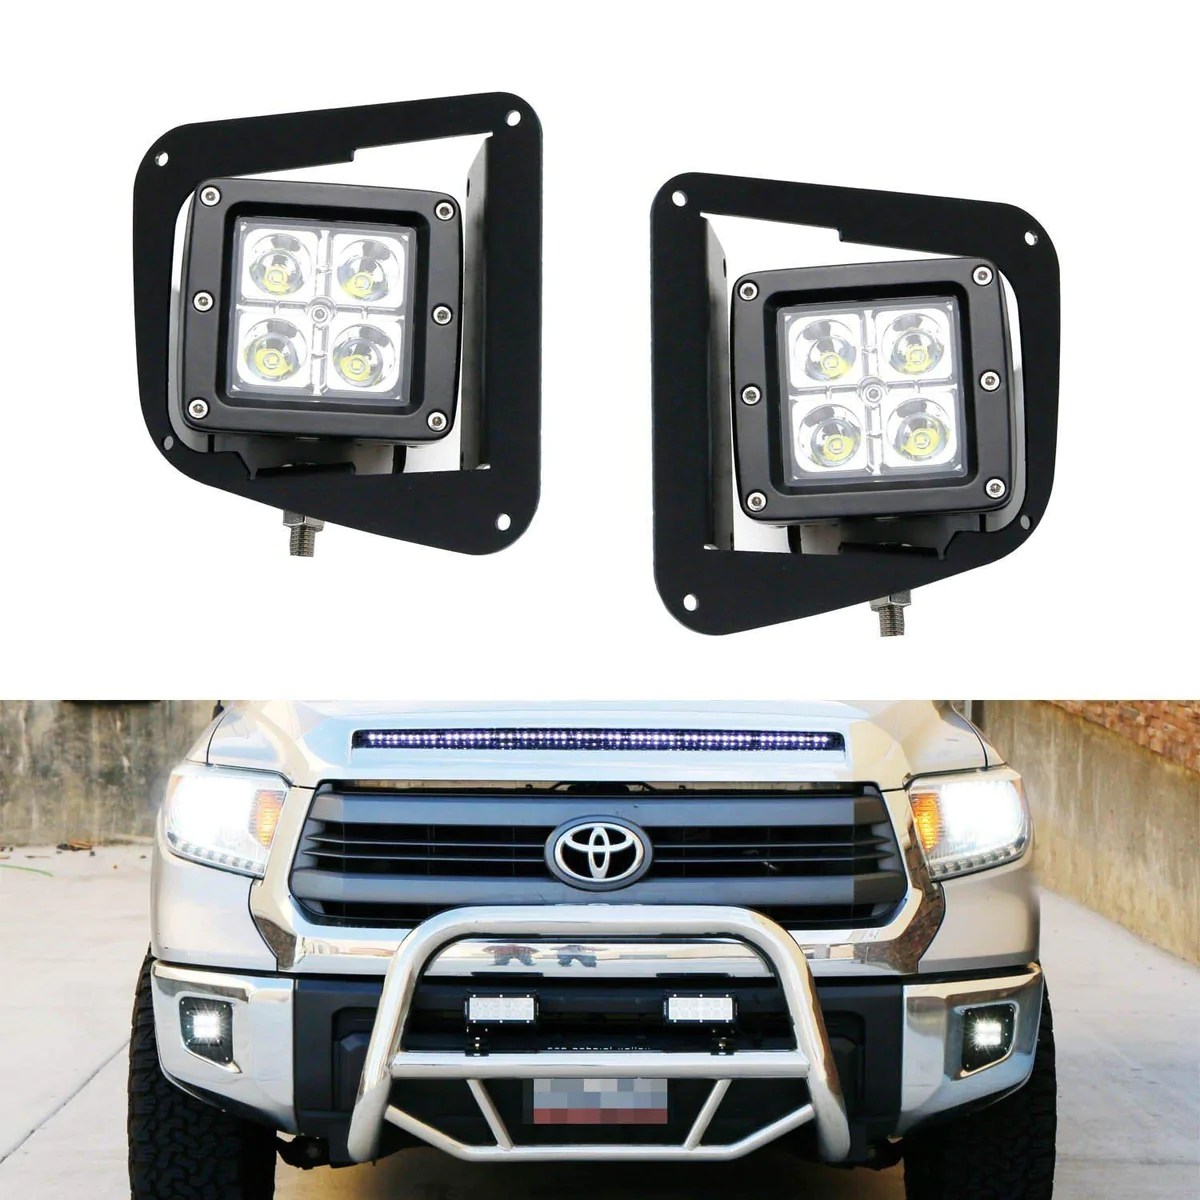 hight resolution of led pod light fog lamp kit for 2014 up toyota tundra includes 2 20w high power cree led cubes foglight bezel covers mounting brackets wiring adapter